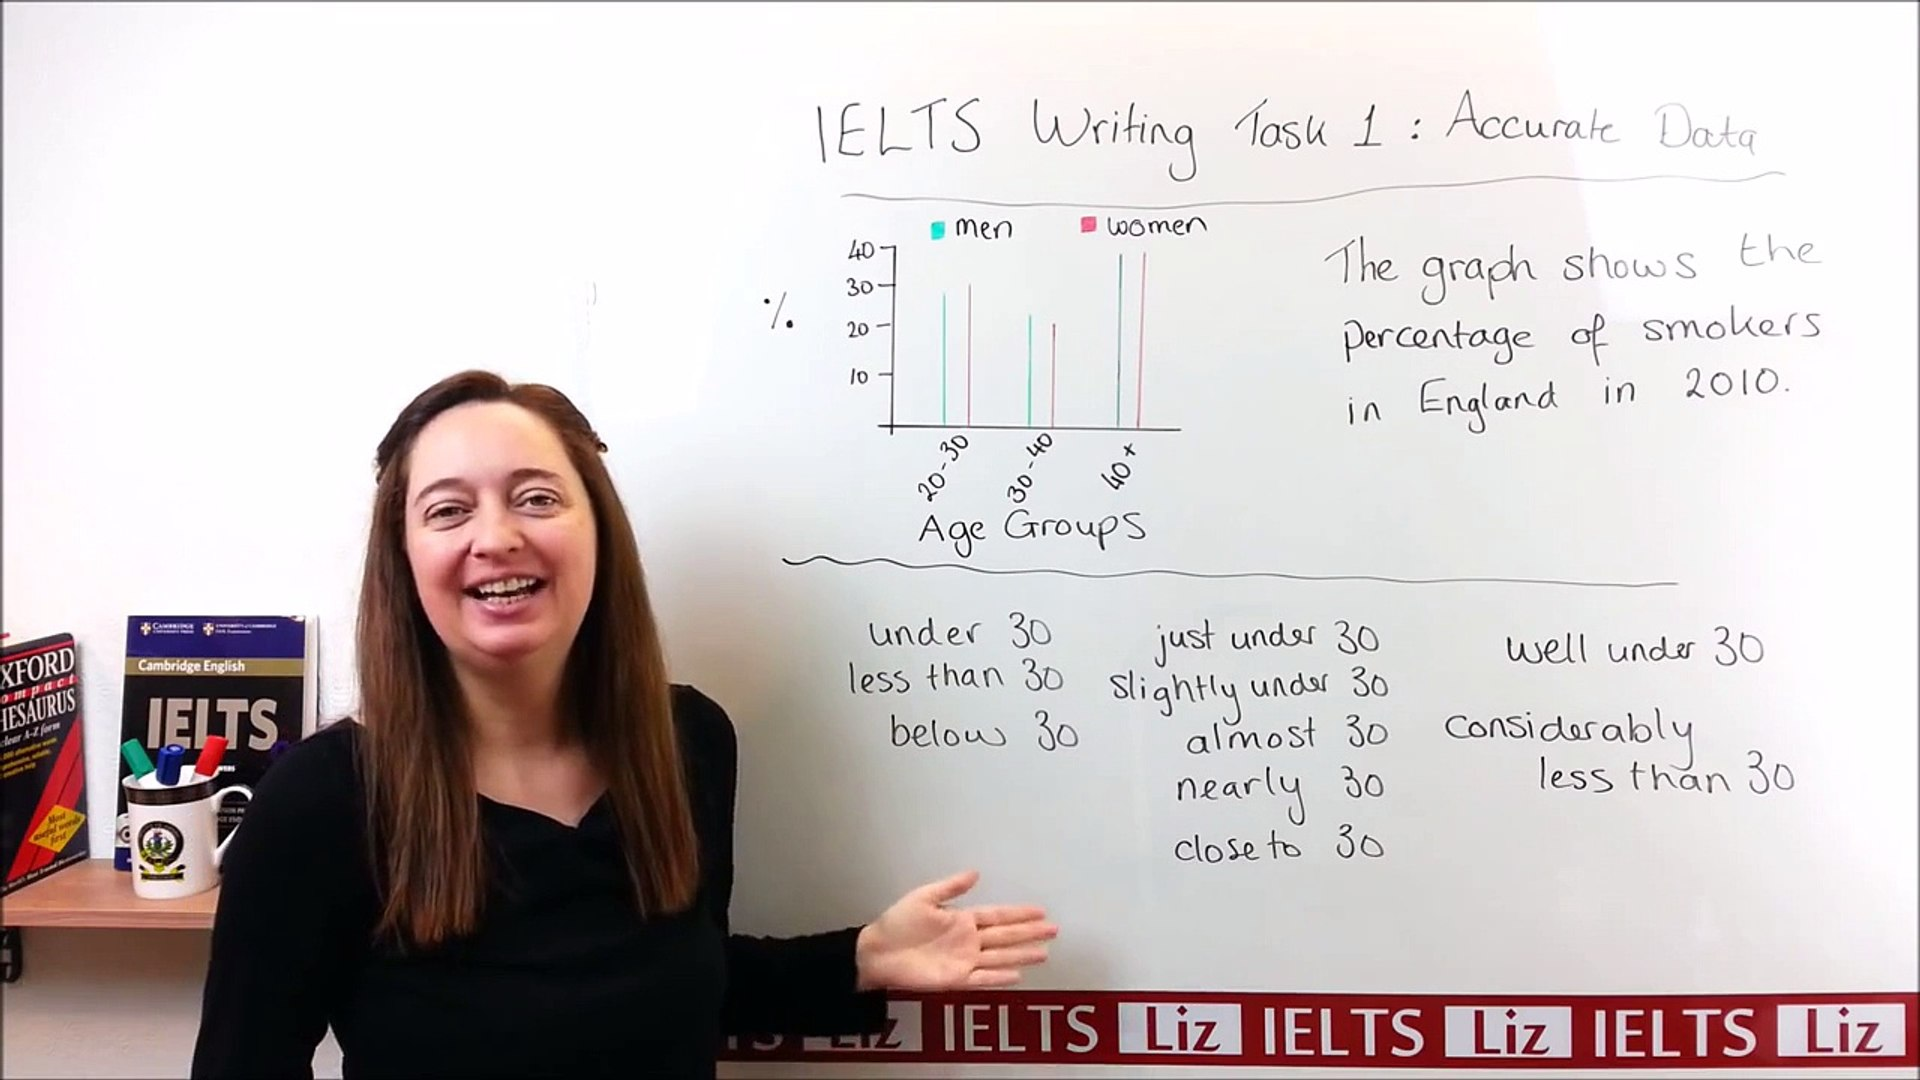 IELTS Writing Task 1: Vocabulary for Accurate Data